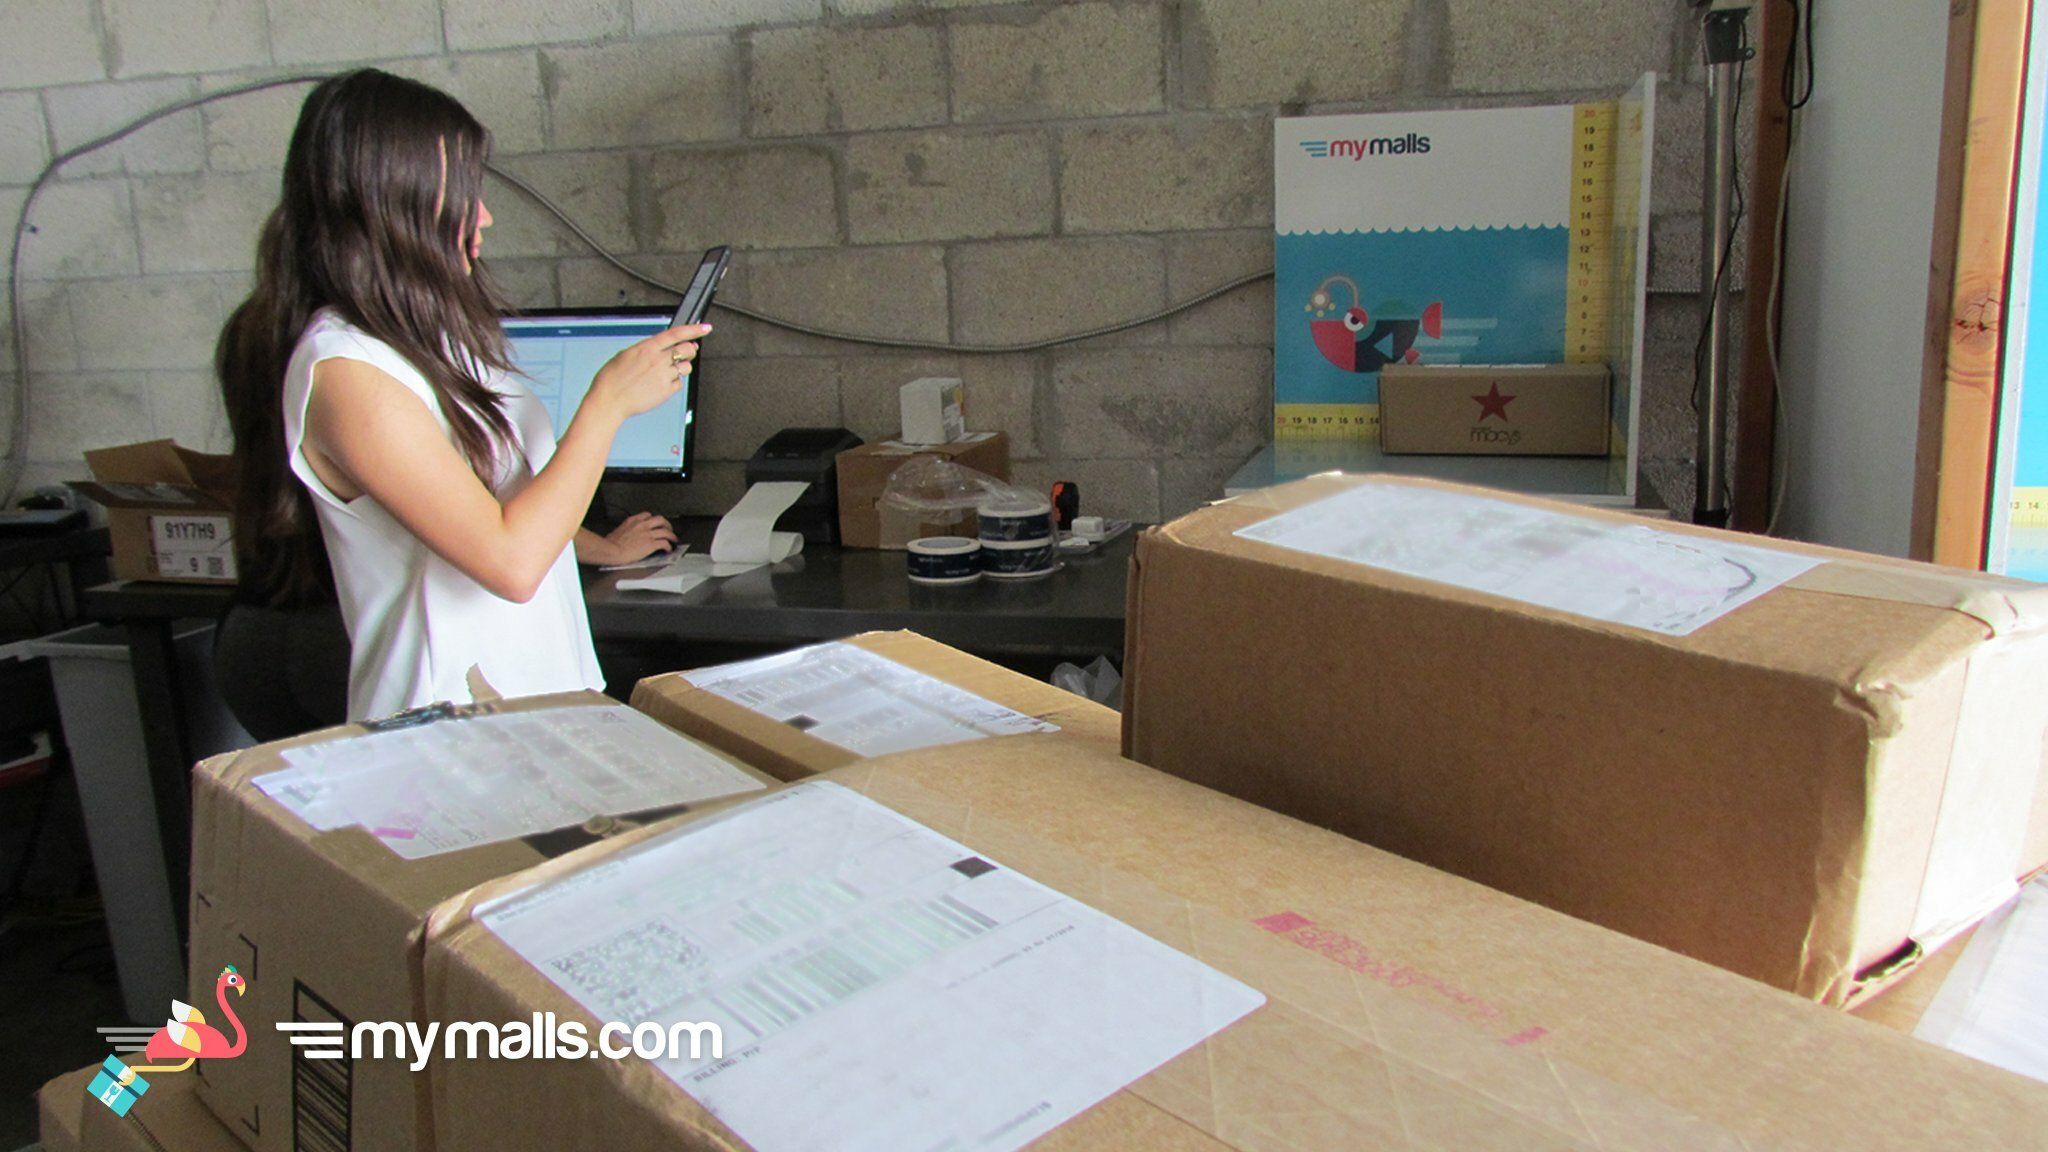 Photo from MyMalls warehouse